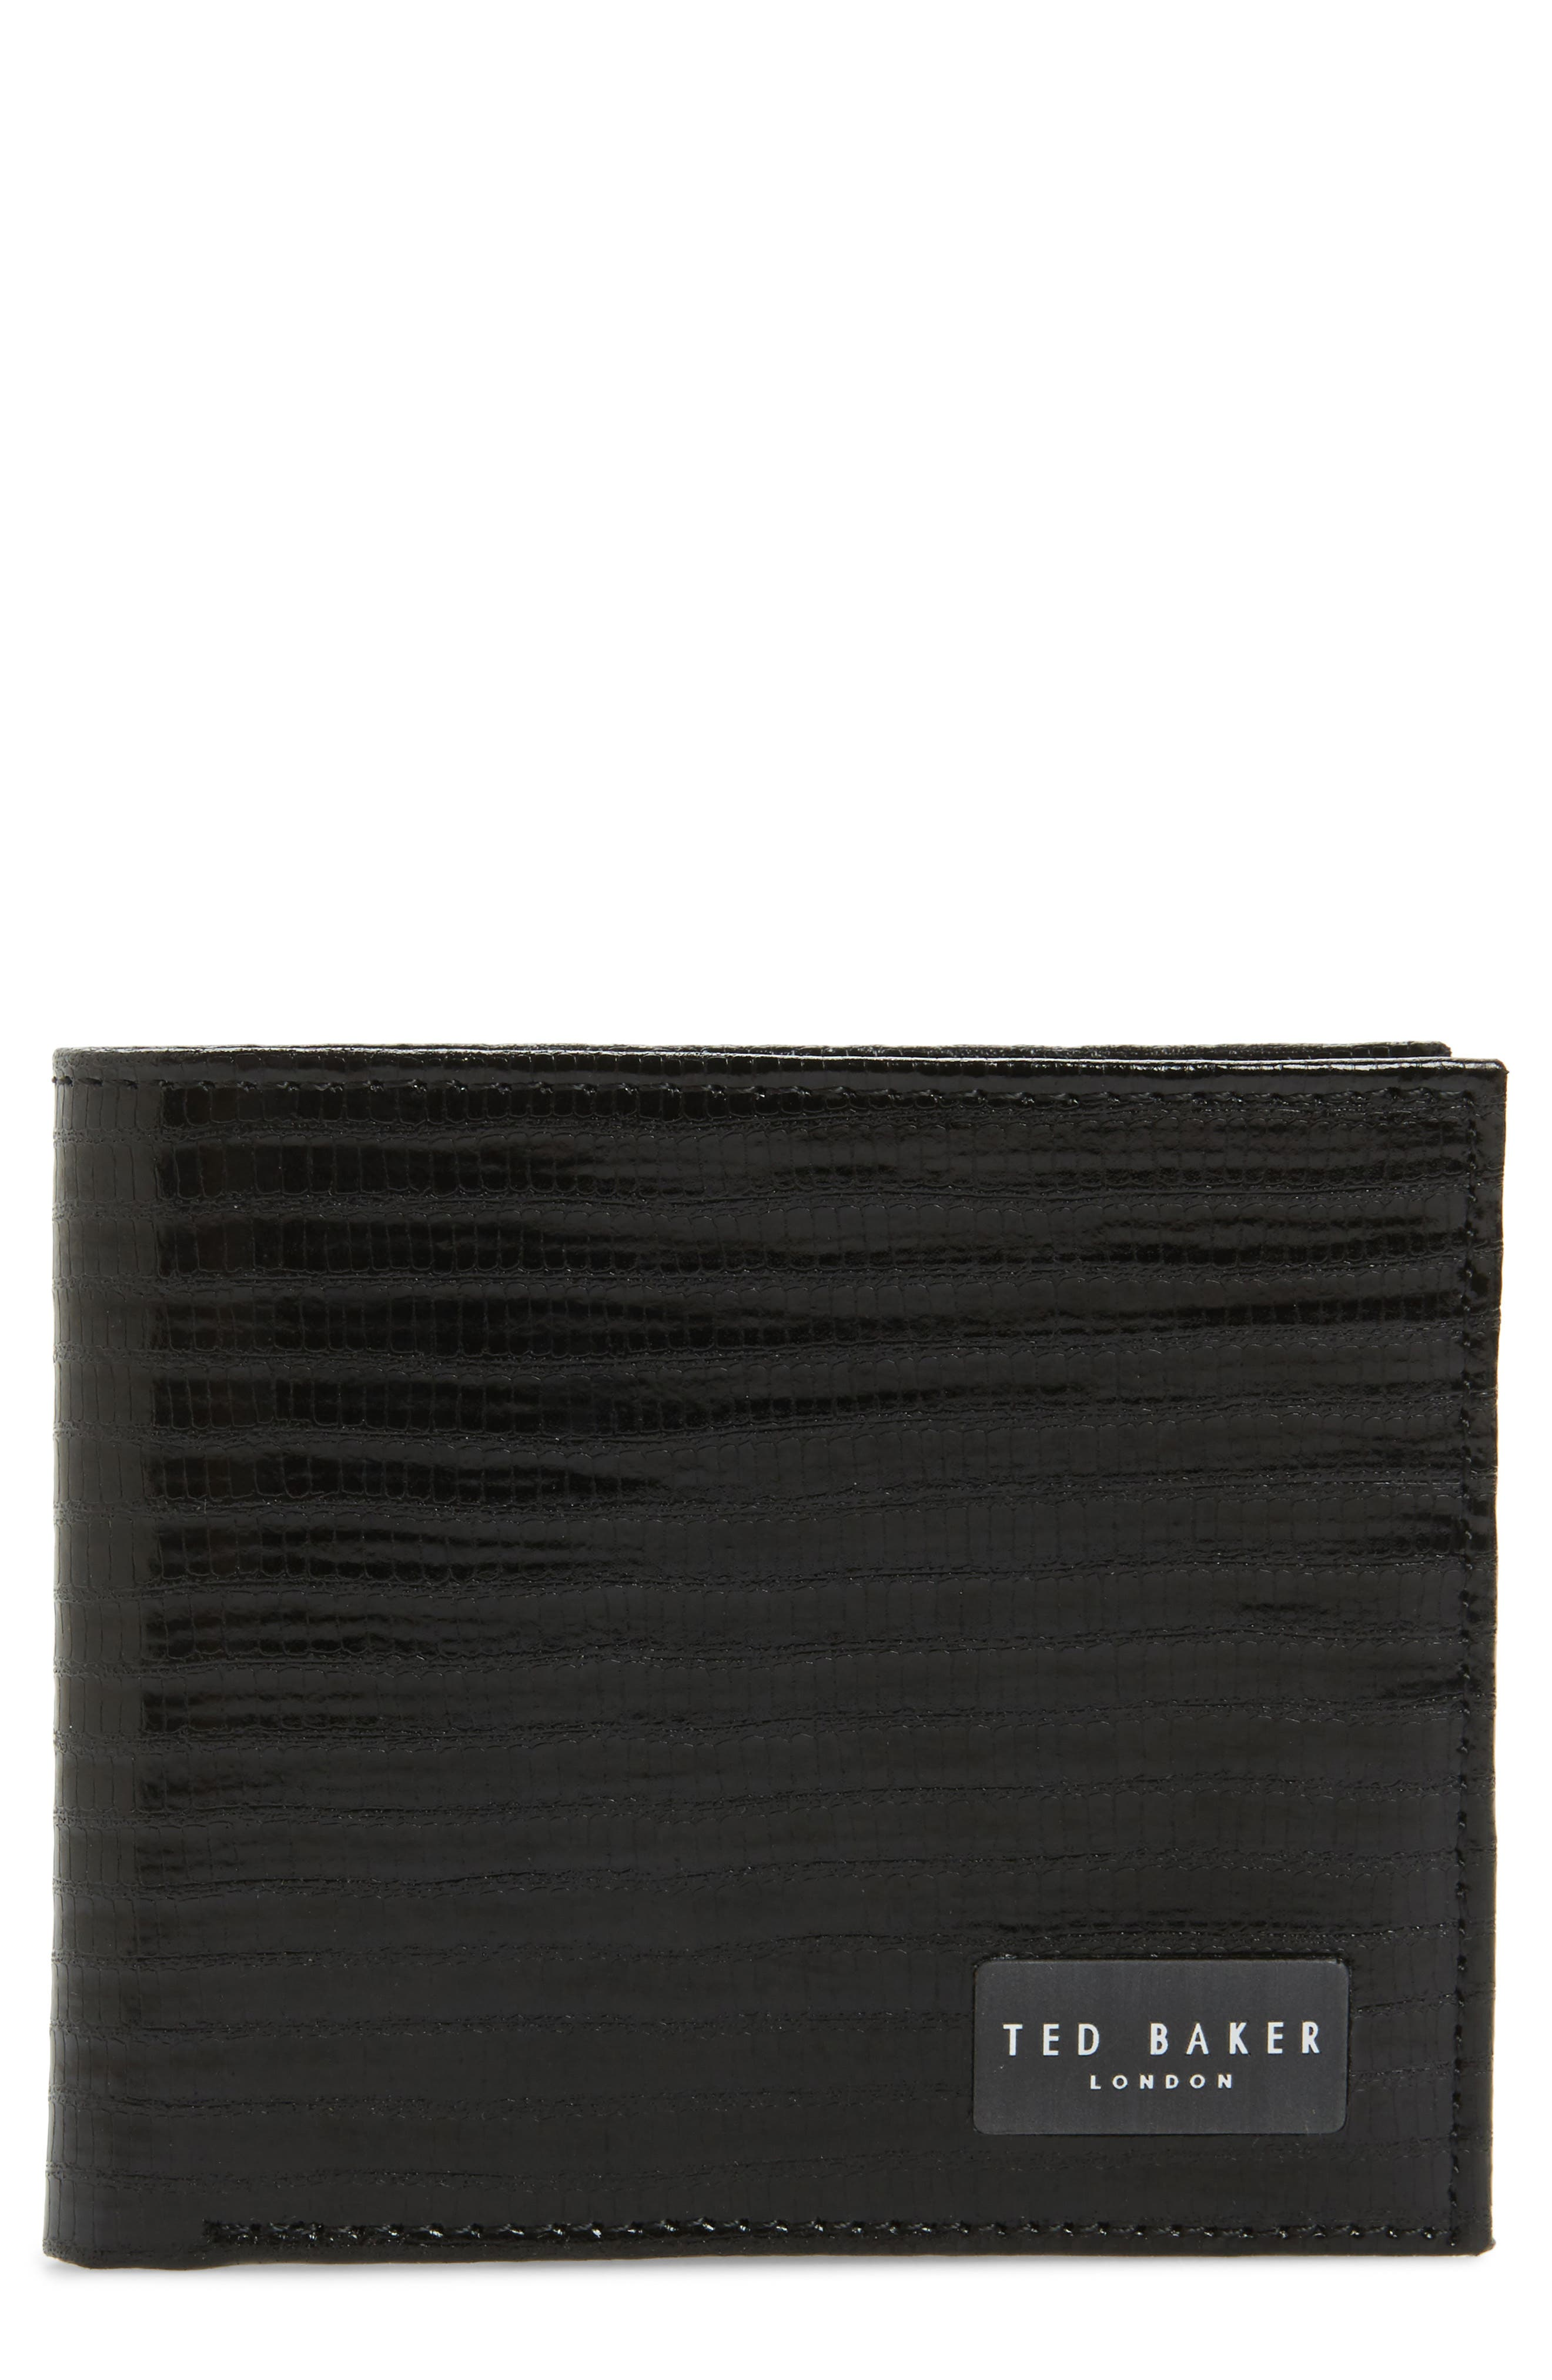 Slayts Leather Wallet,                             Main thumbnail 1, color,                             001